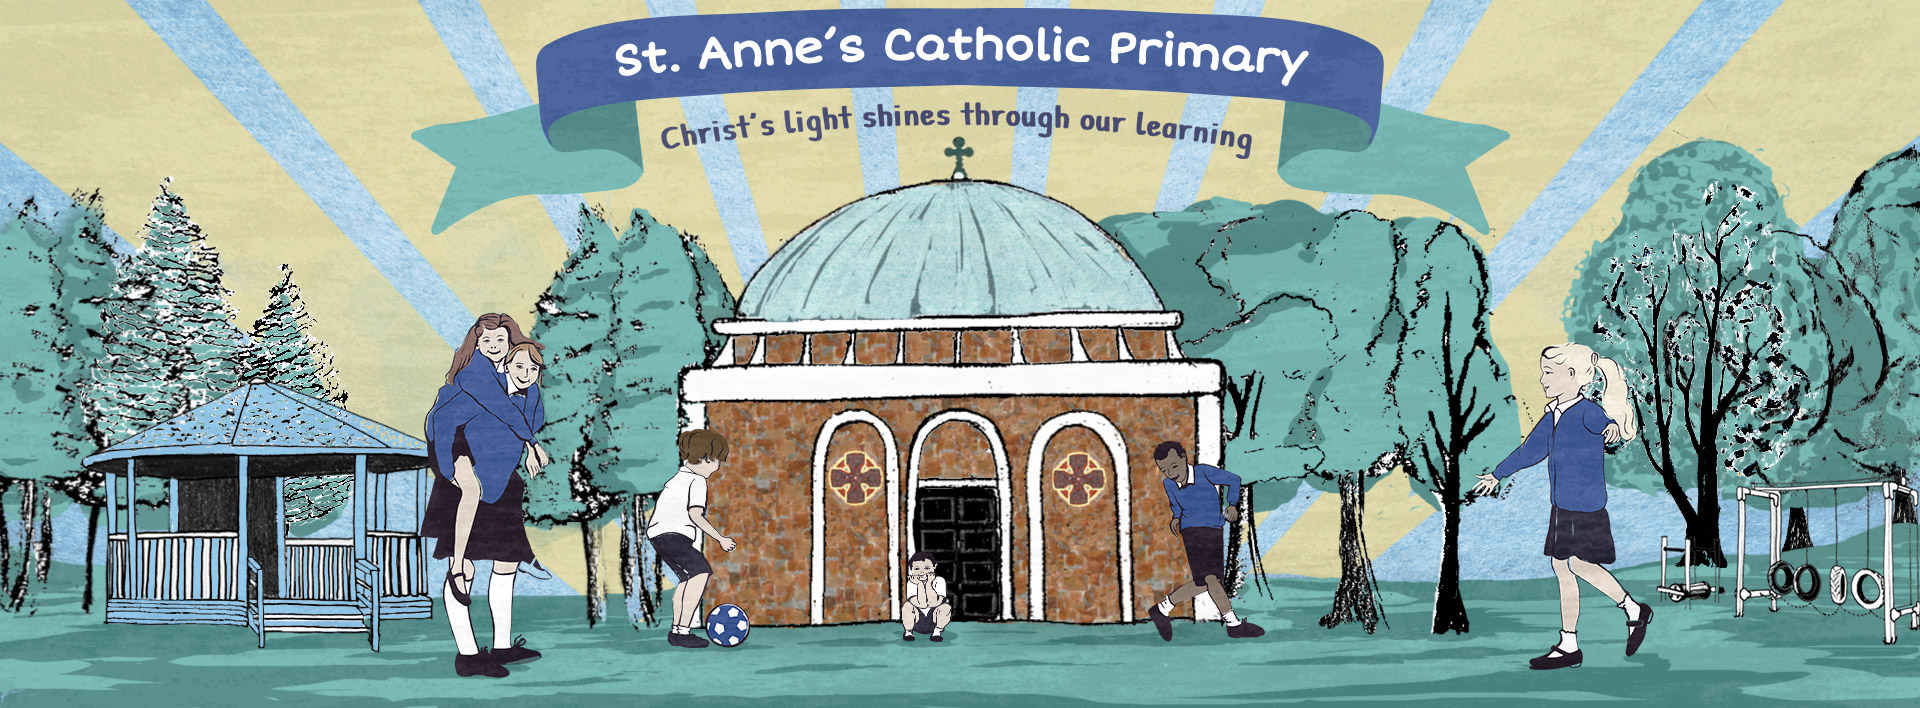 St Anne's Catholic Primary